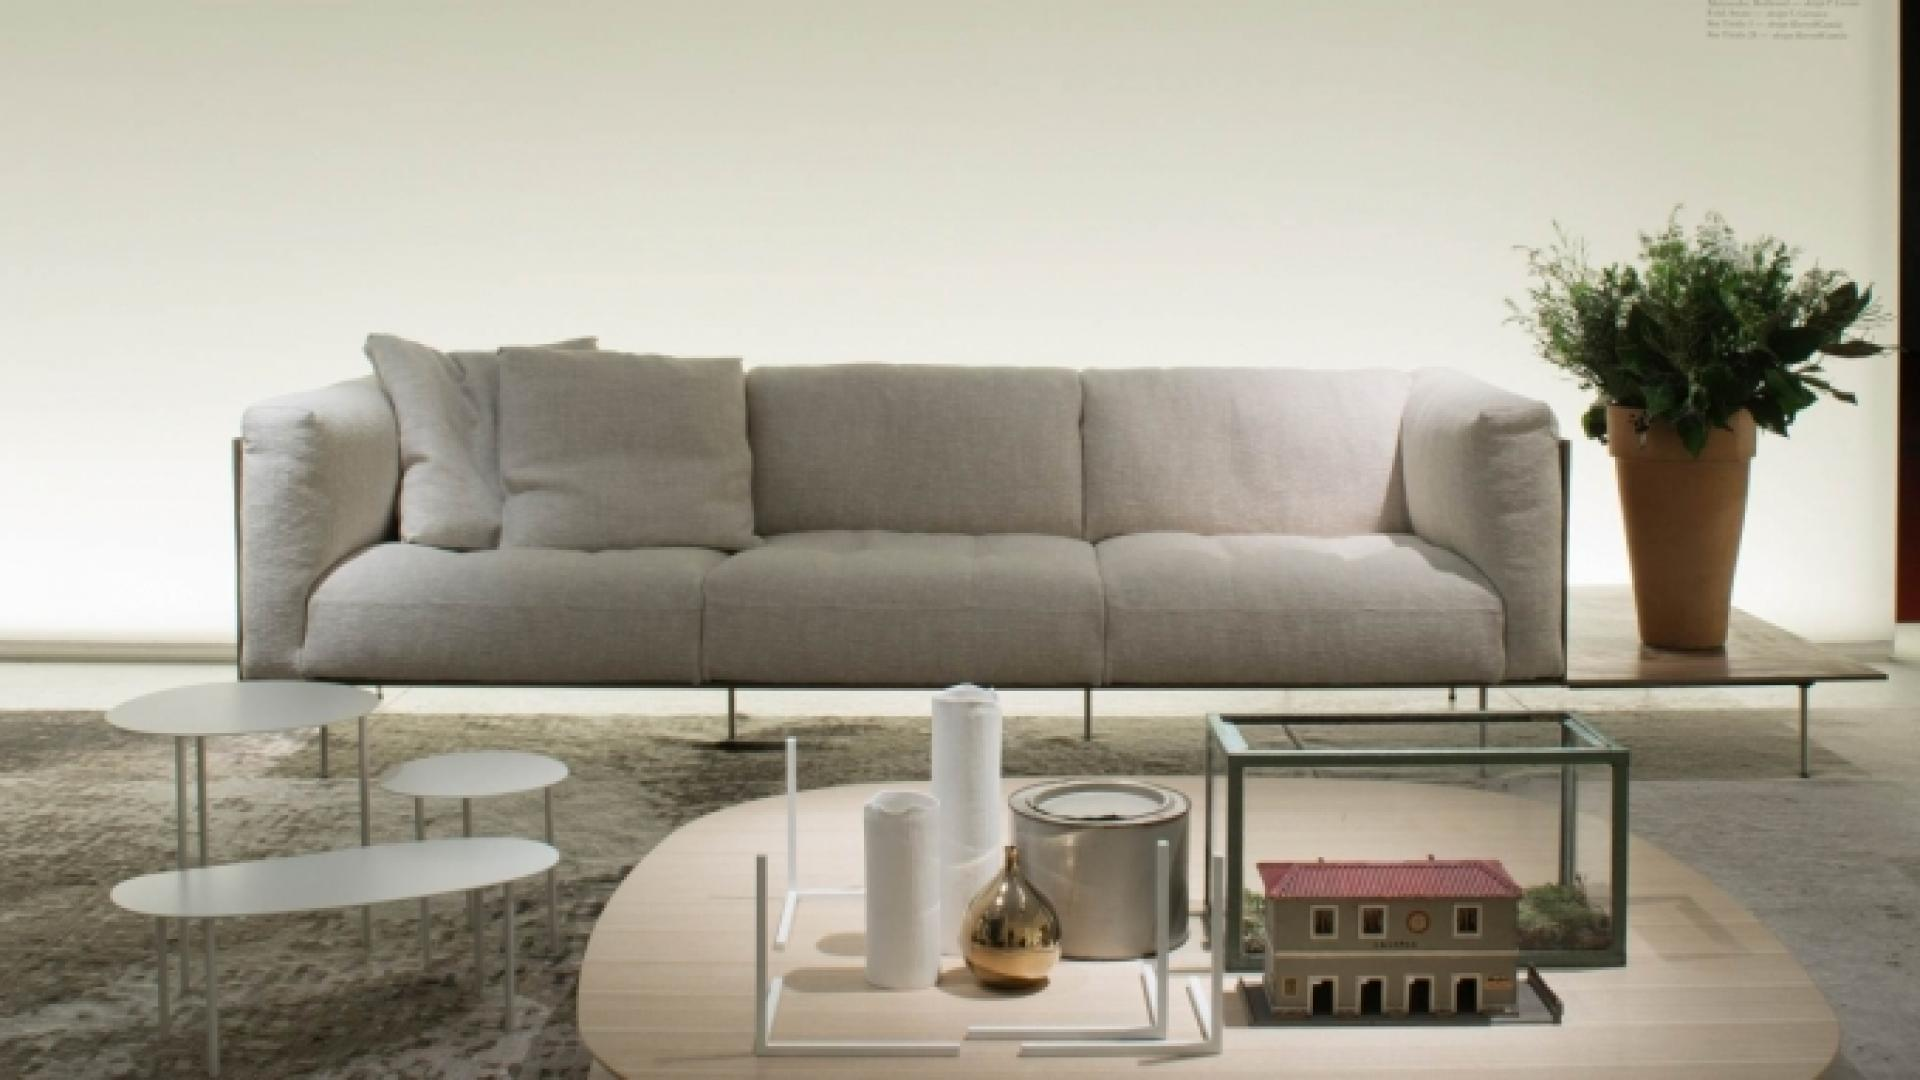 Rod 4-Seater sofa 240 cm